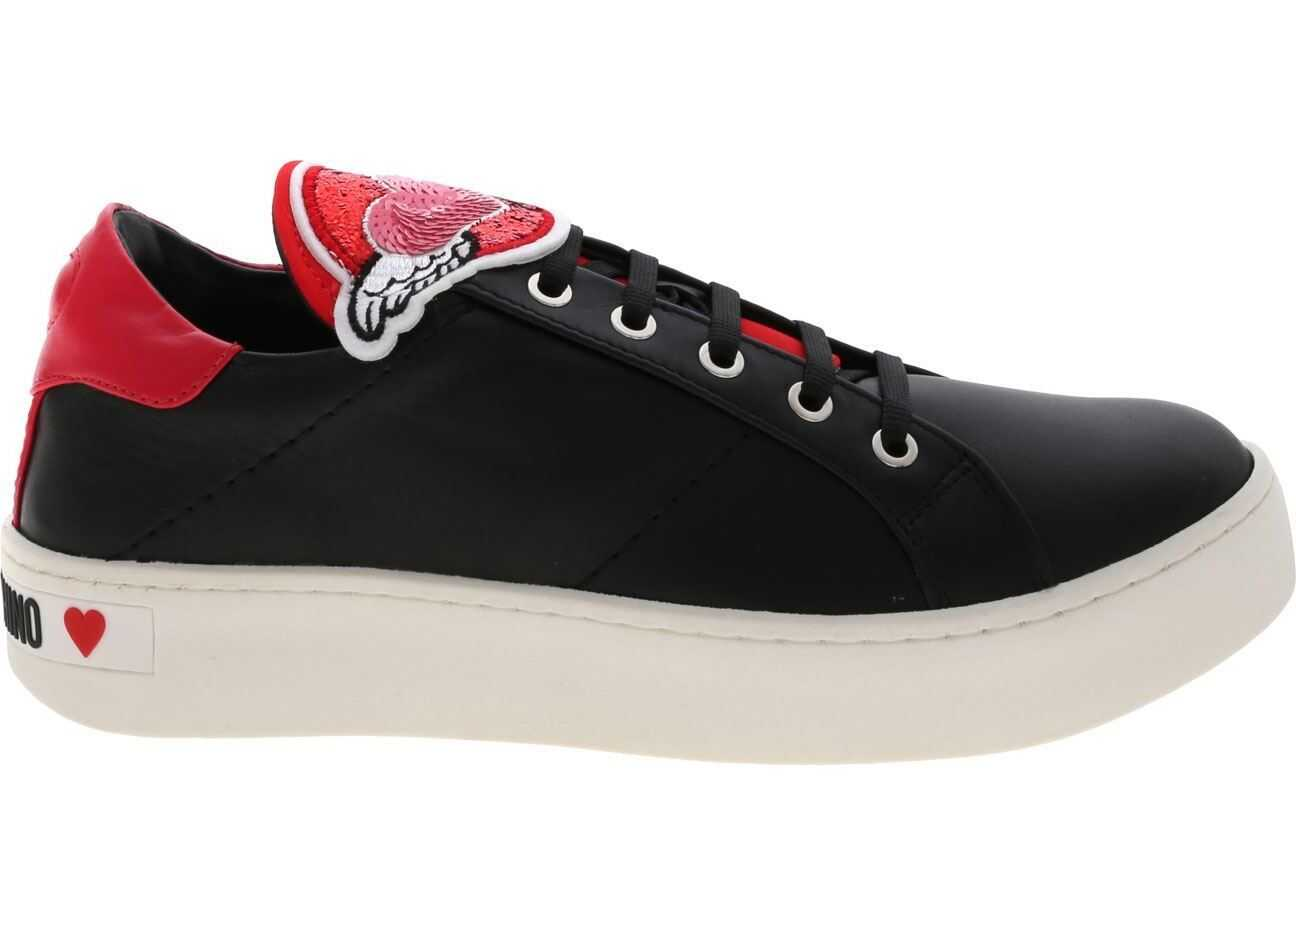 LOVE Moschino Black Sneakers With Heart Patch Black